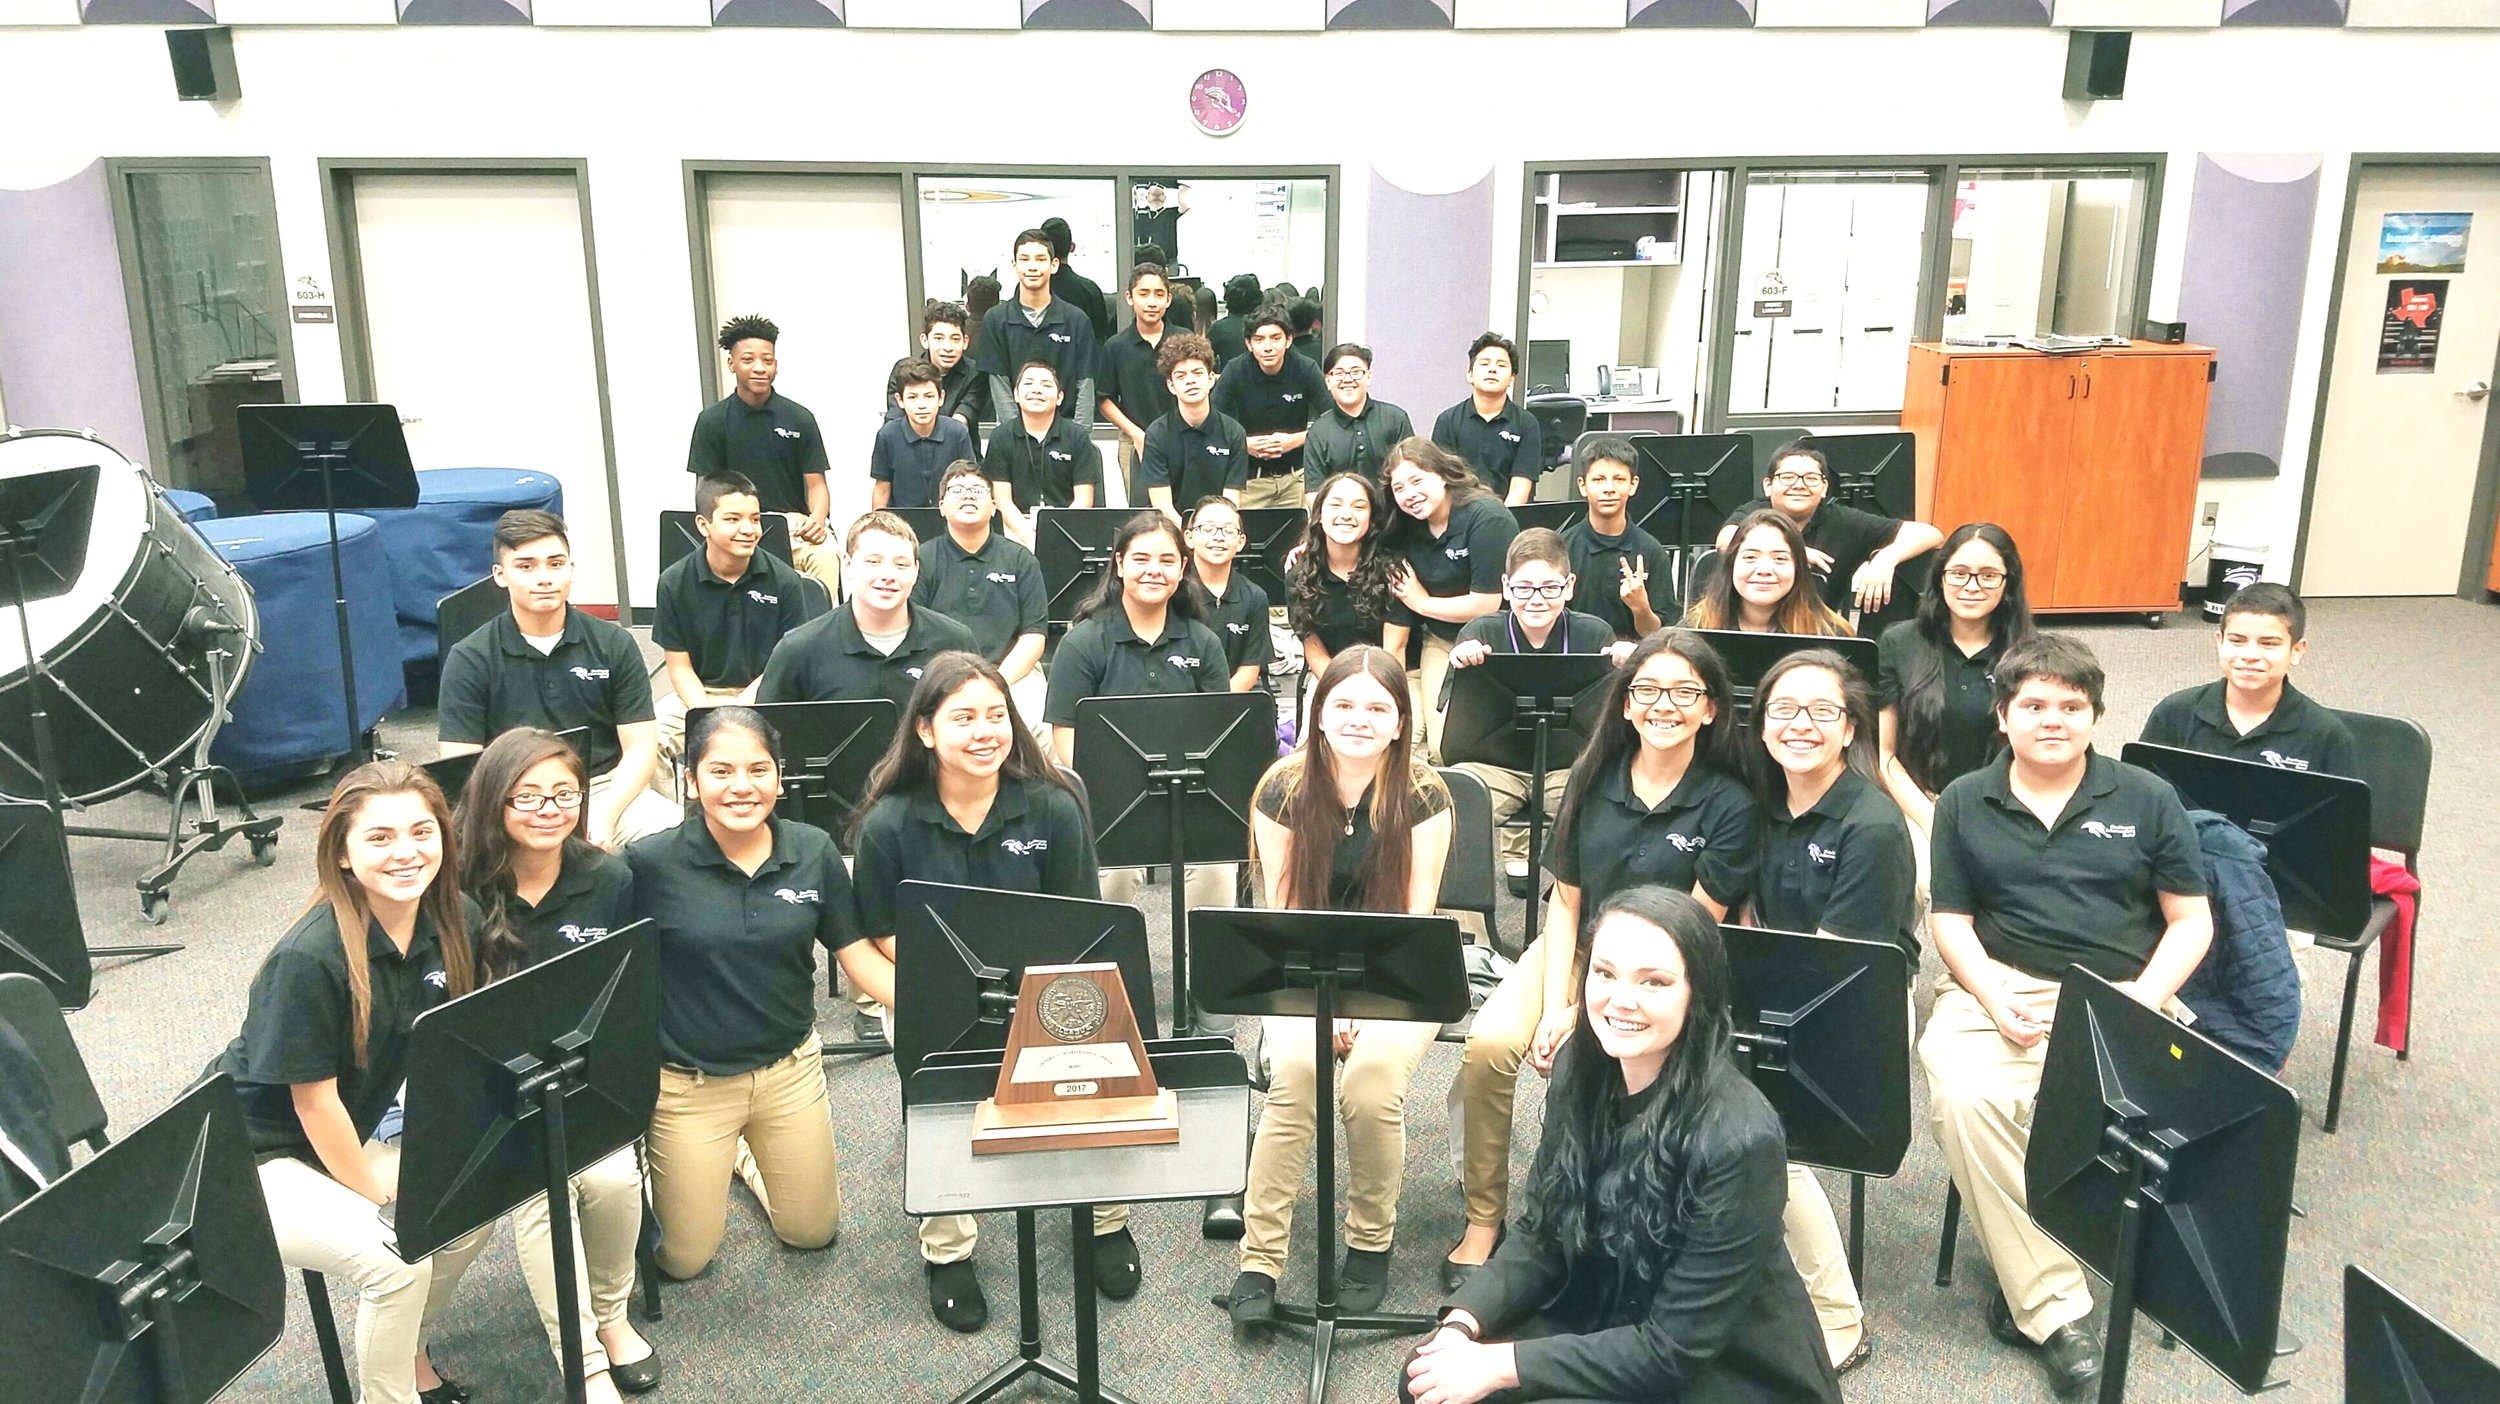 Ms. Sanchez and the Southmore Intermediate Non-Varsity Concert Band